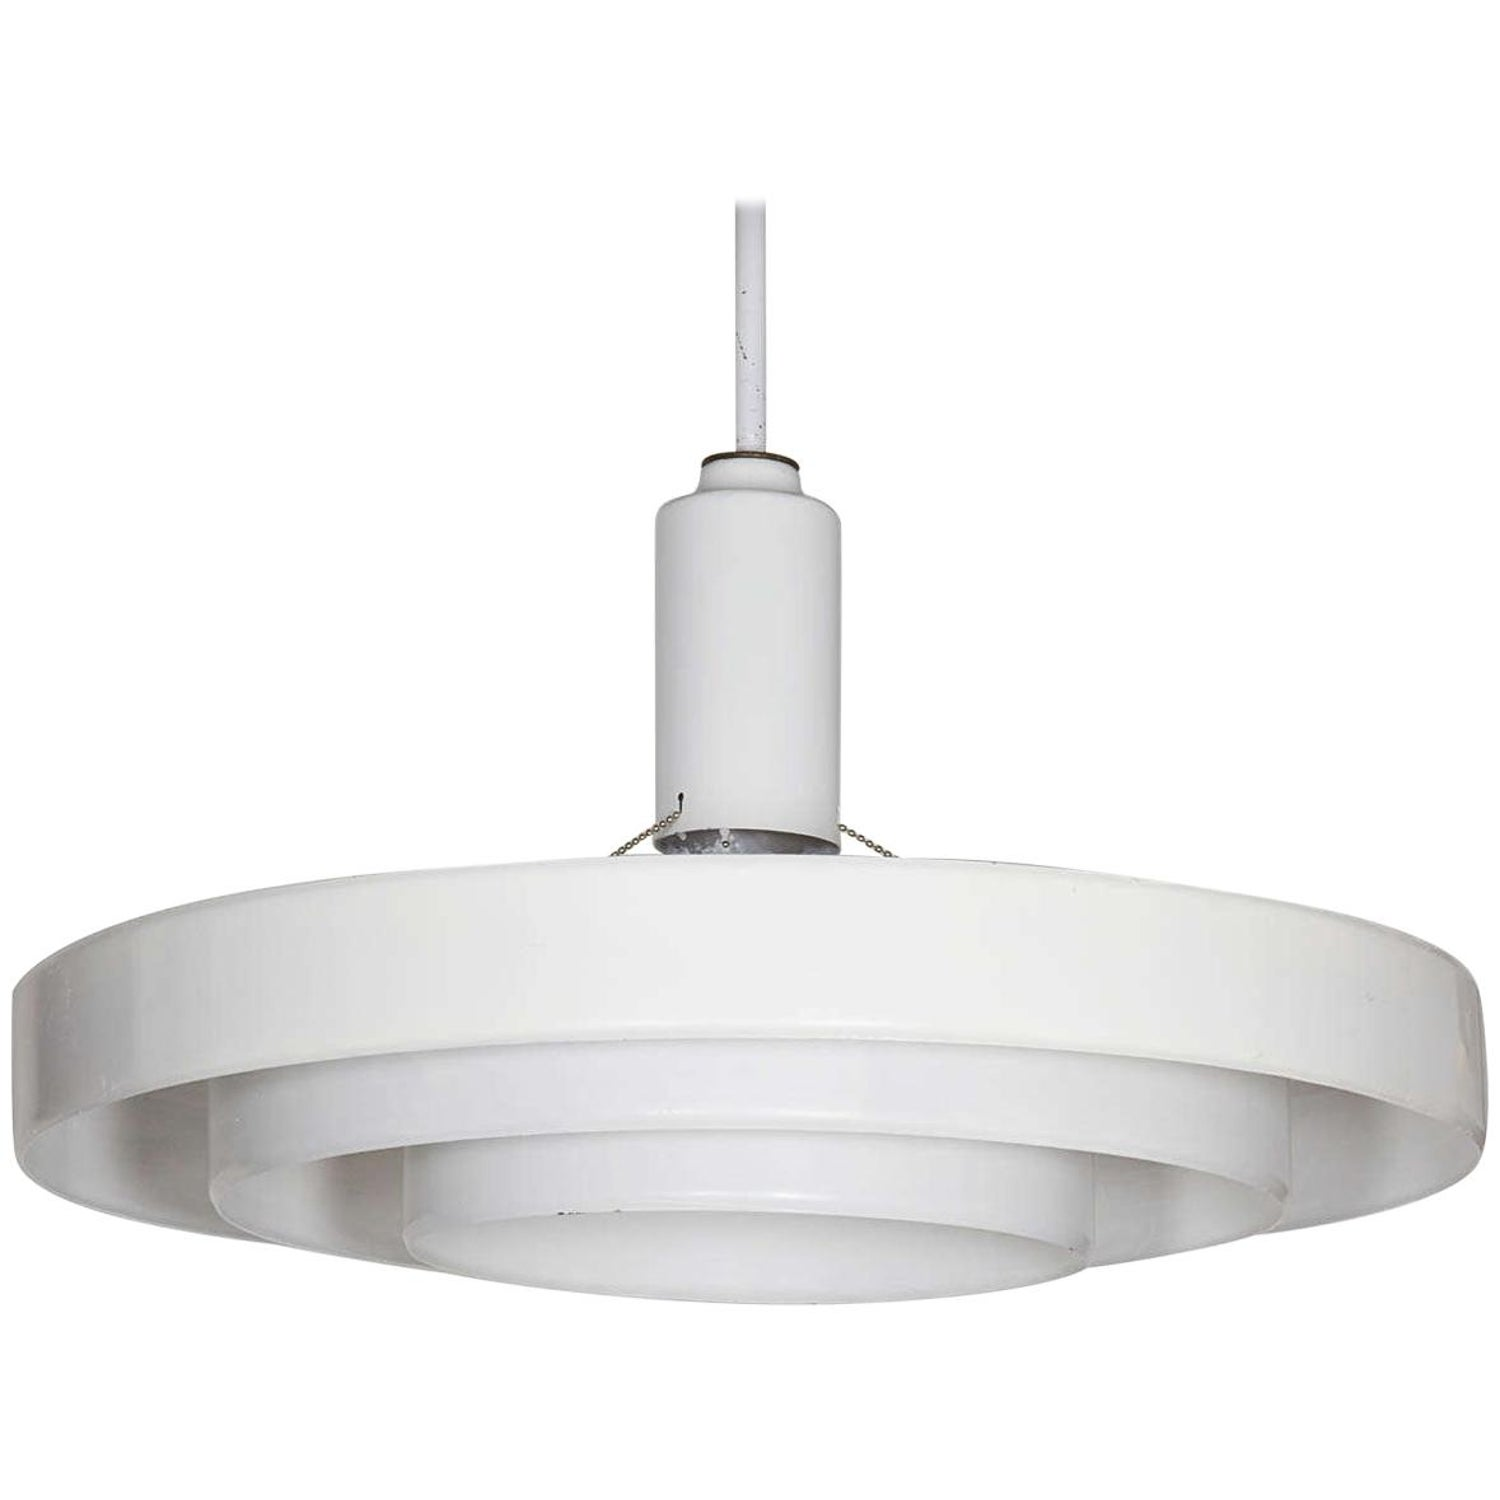 Minimalist white three tier saucer pendant light fixture by prescolite